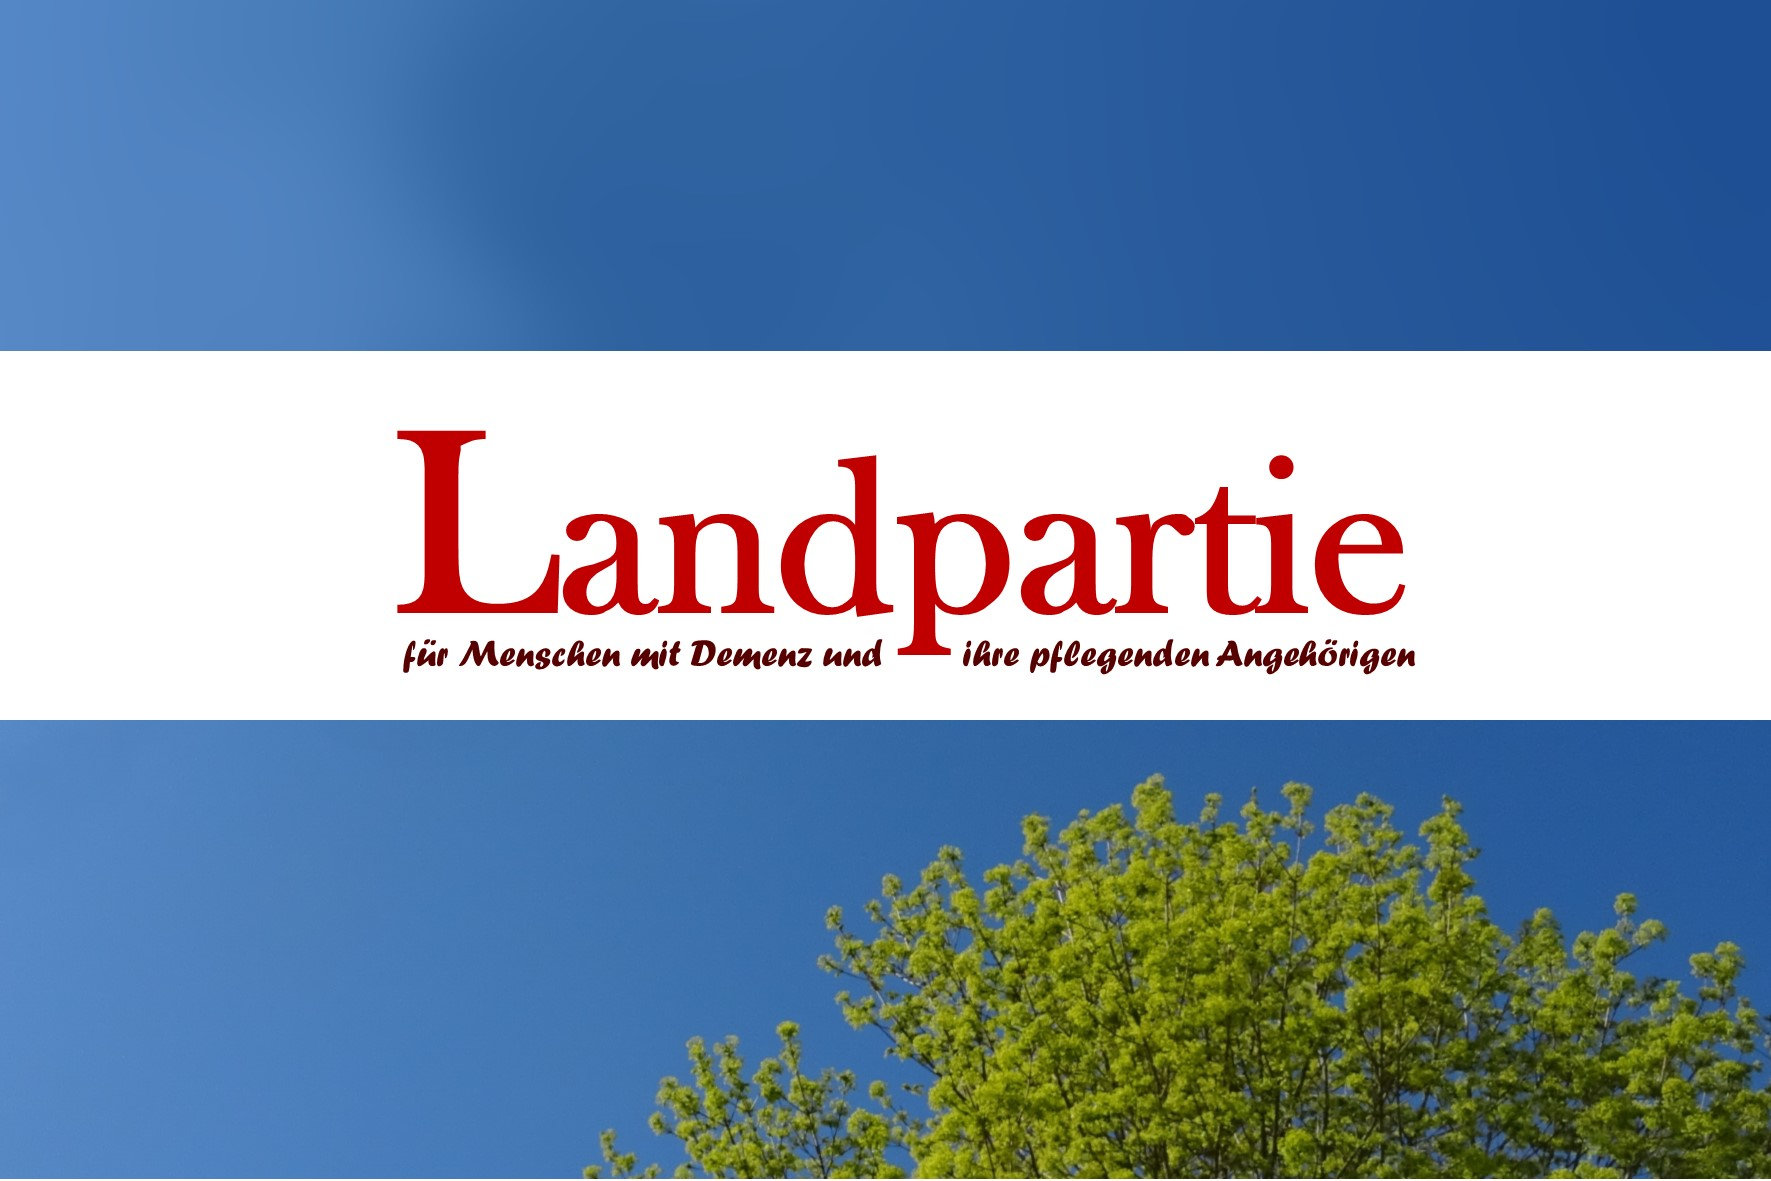 Landpartie am 27. August 2019